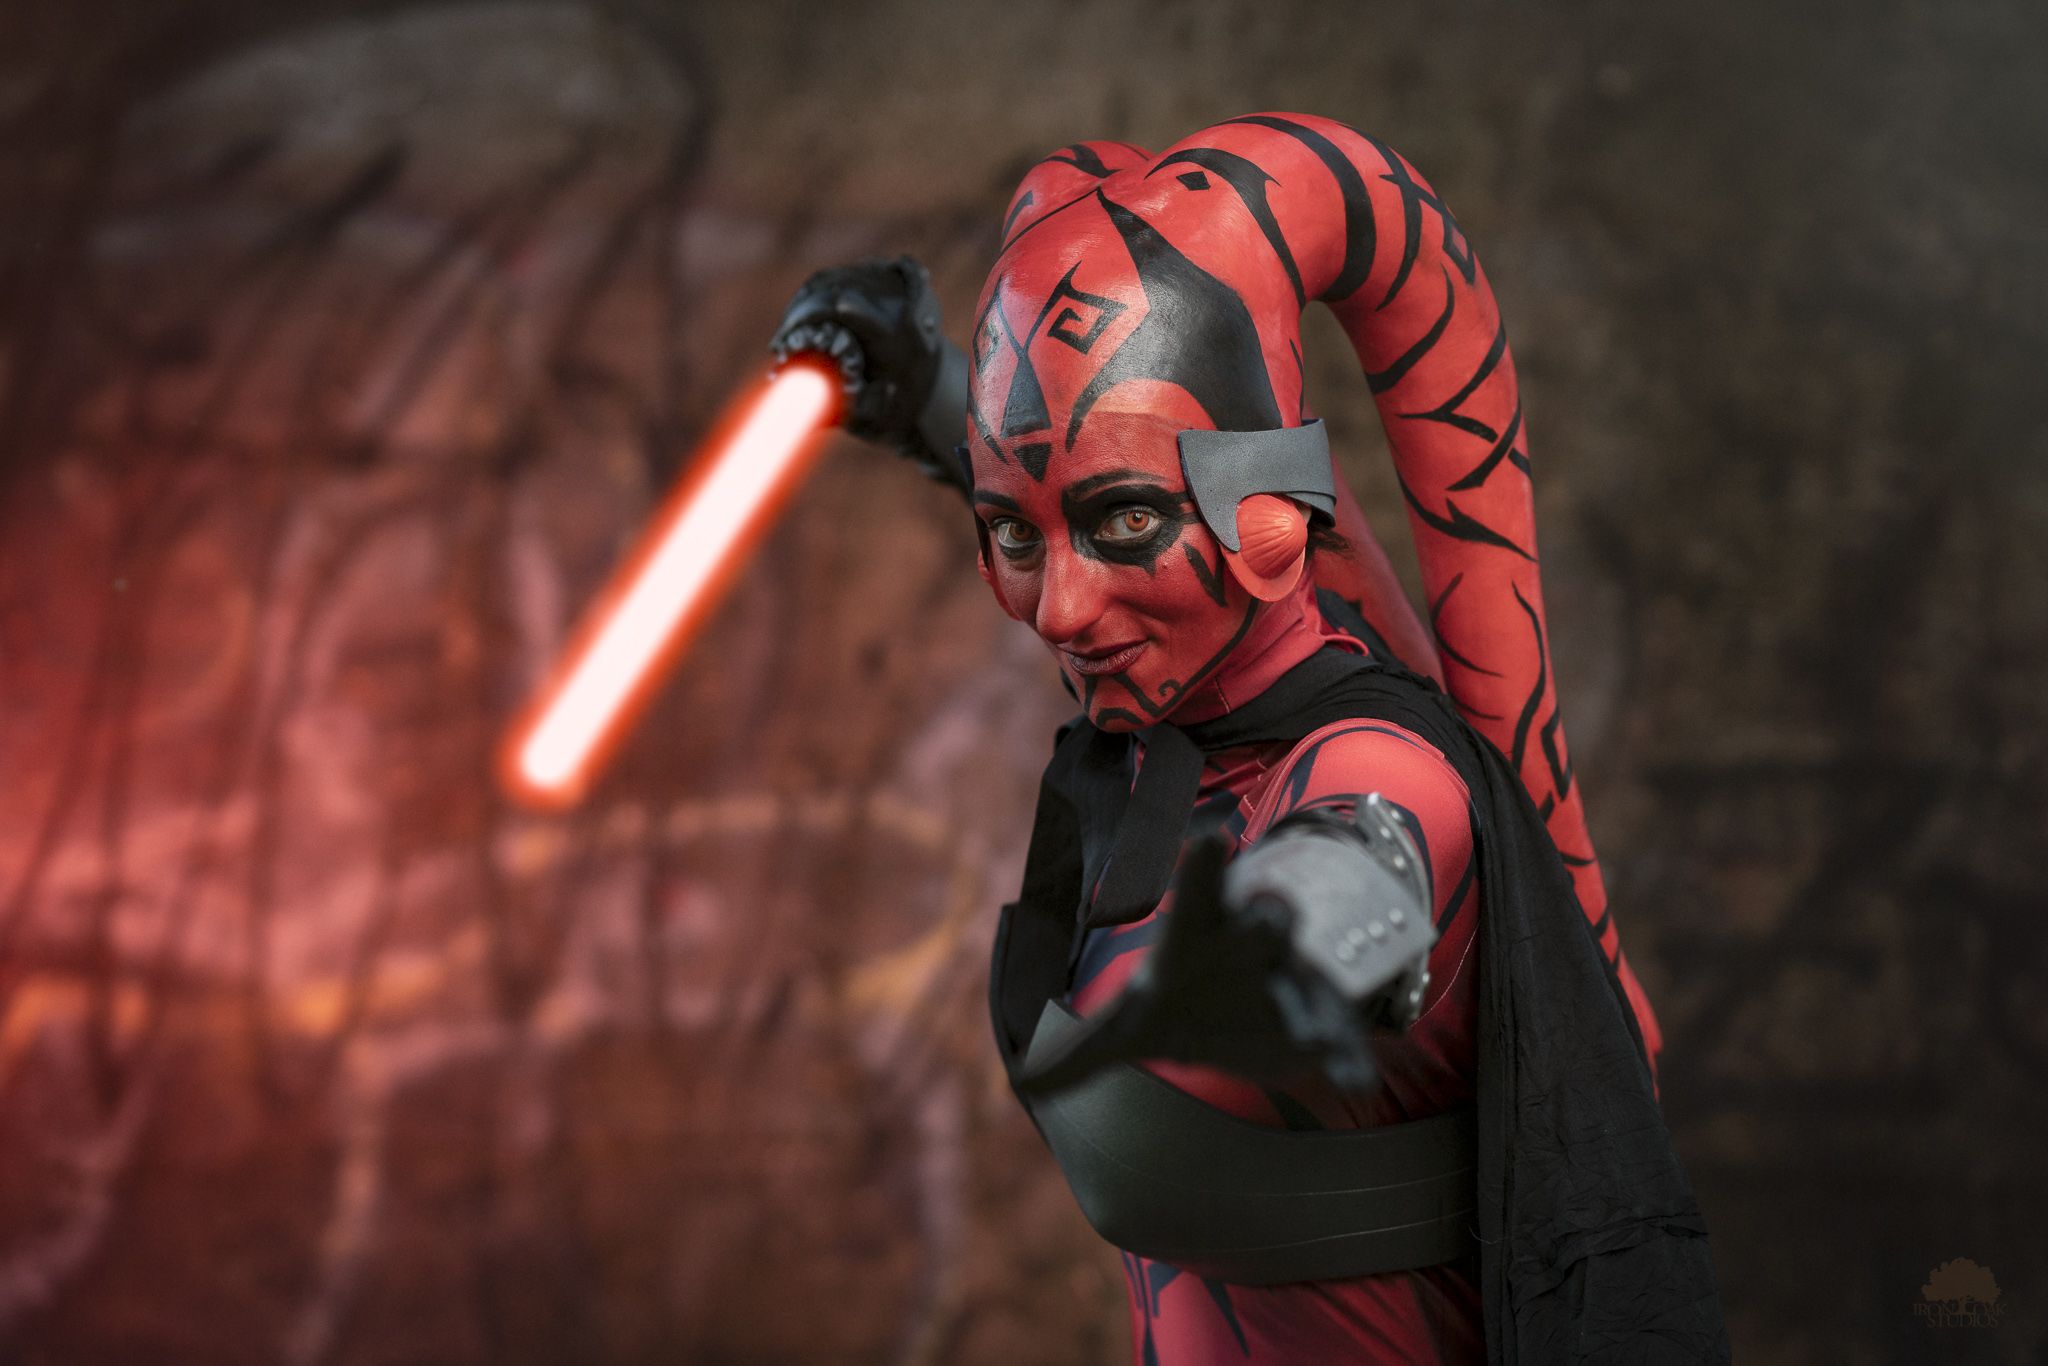 Phila-Comic-Con-2019-Darth-Talon-Iron-Oak-Studios-.jpg